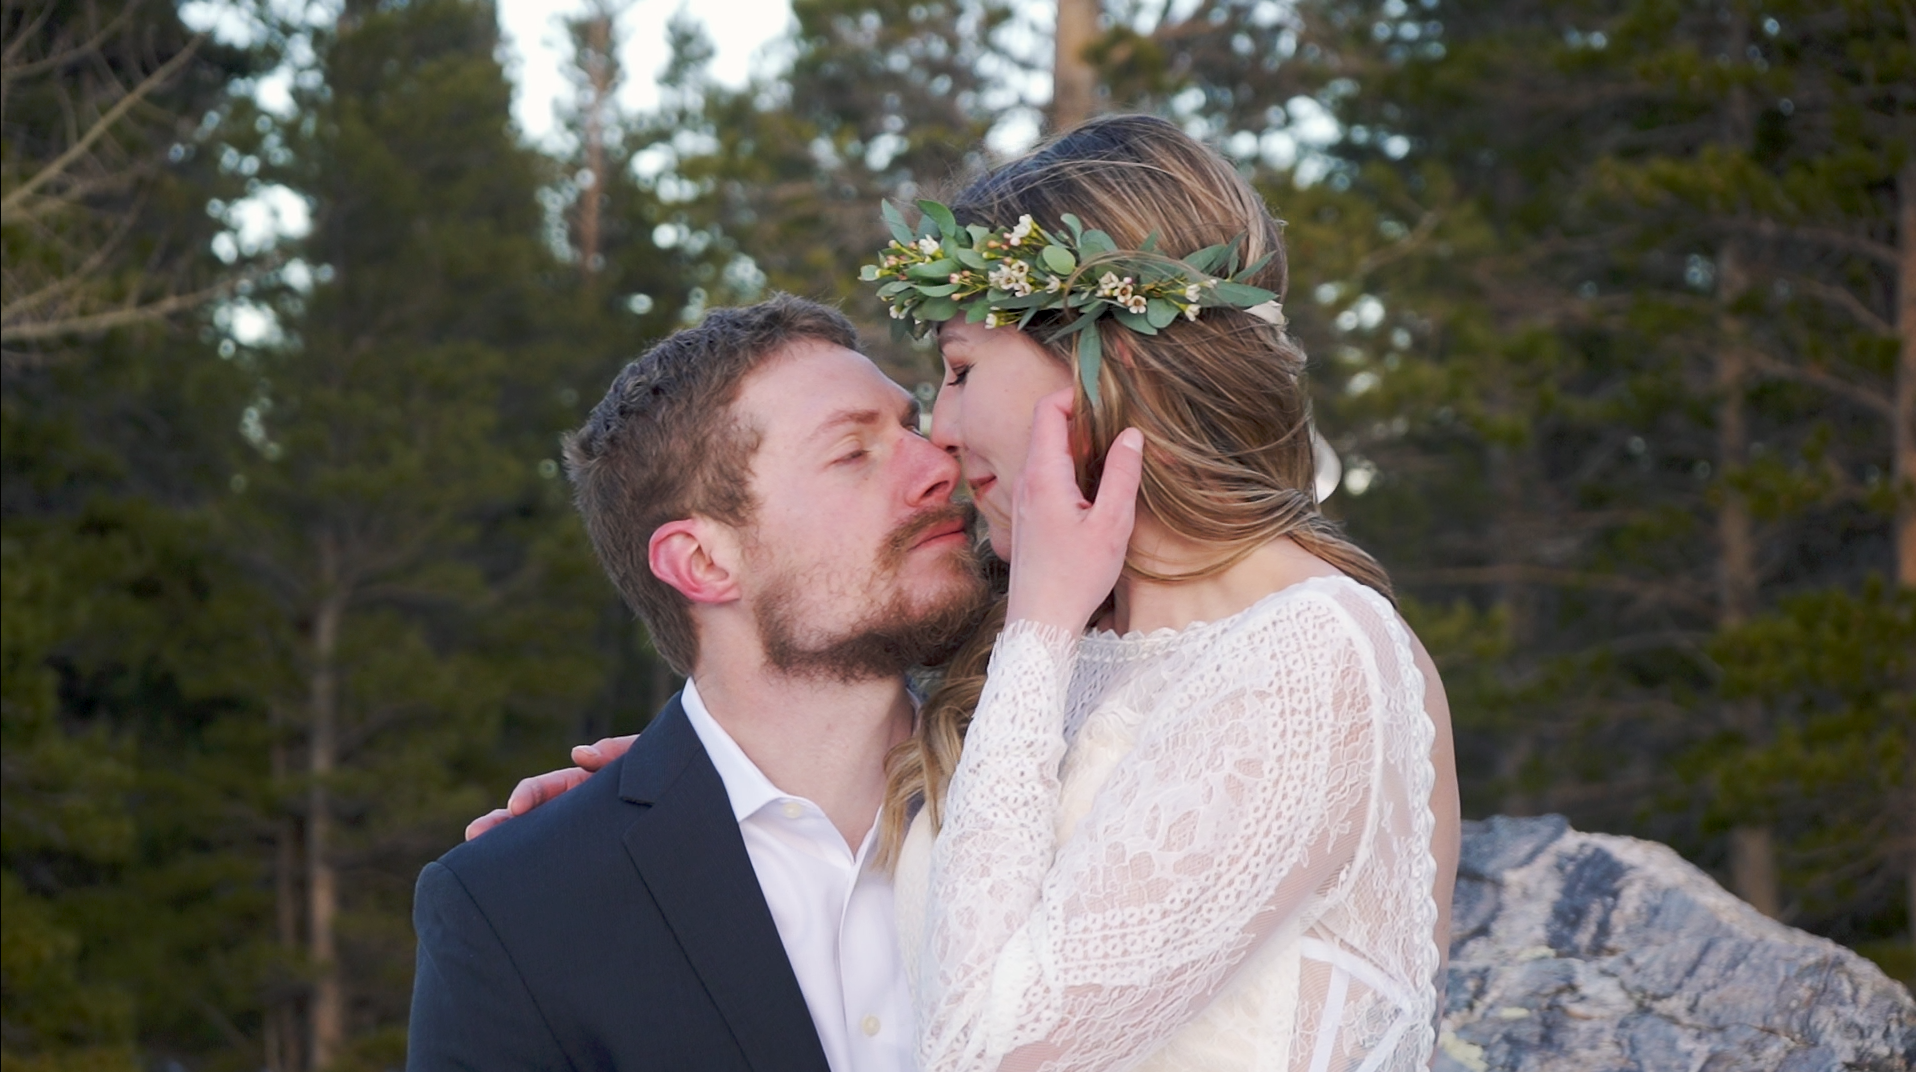 Zack + Samantha | Estes Park, Colorado | Rocky Mountain National Park